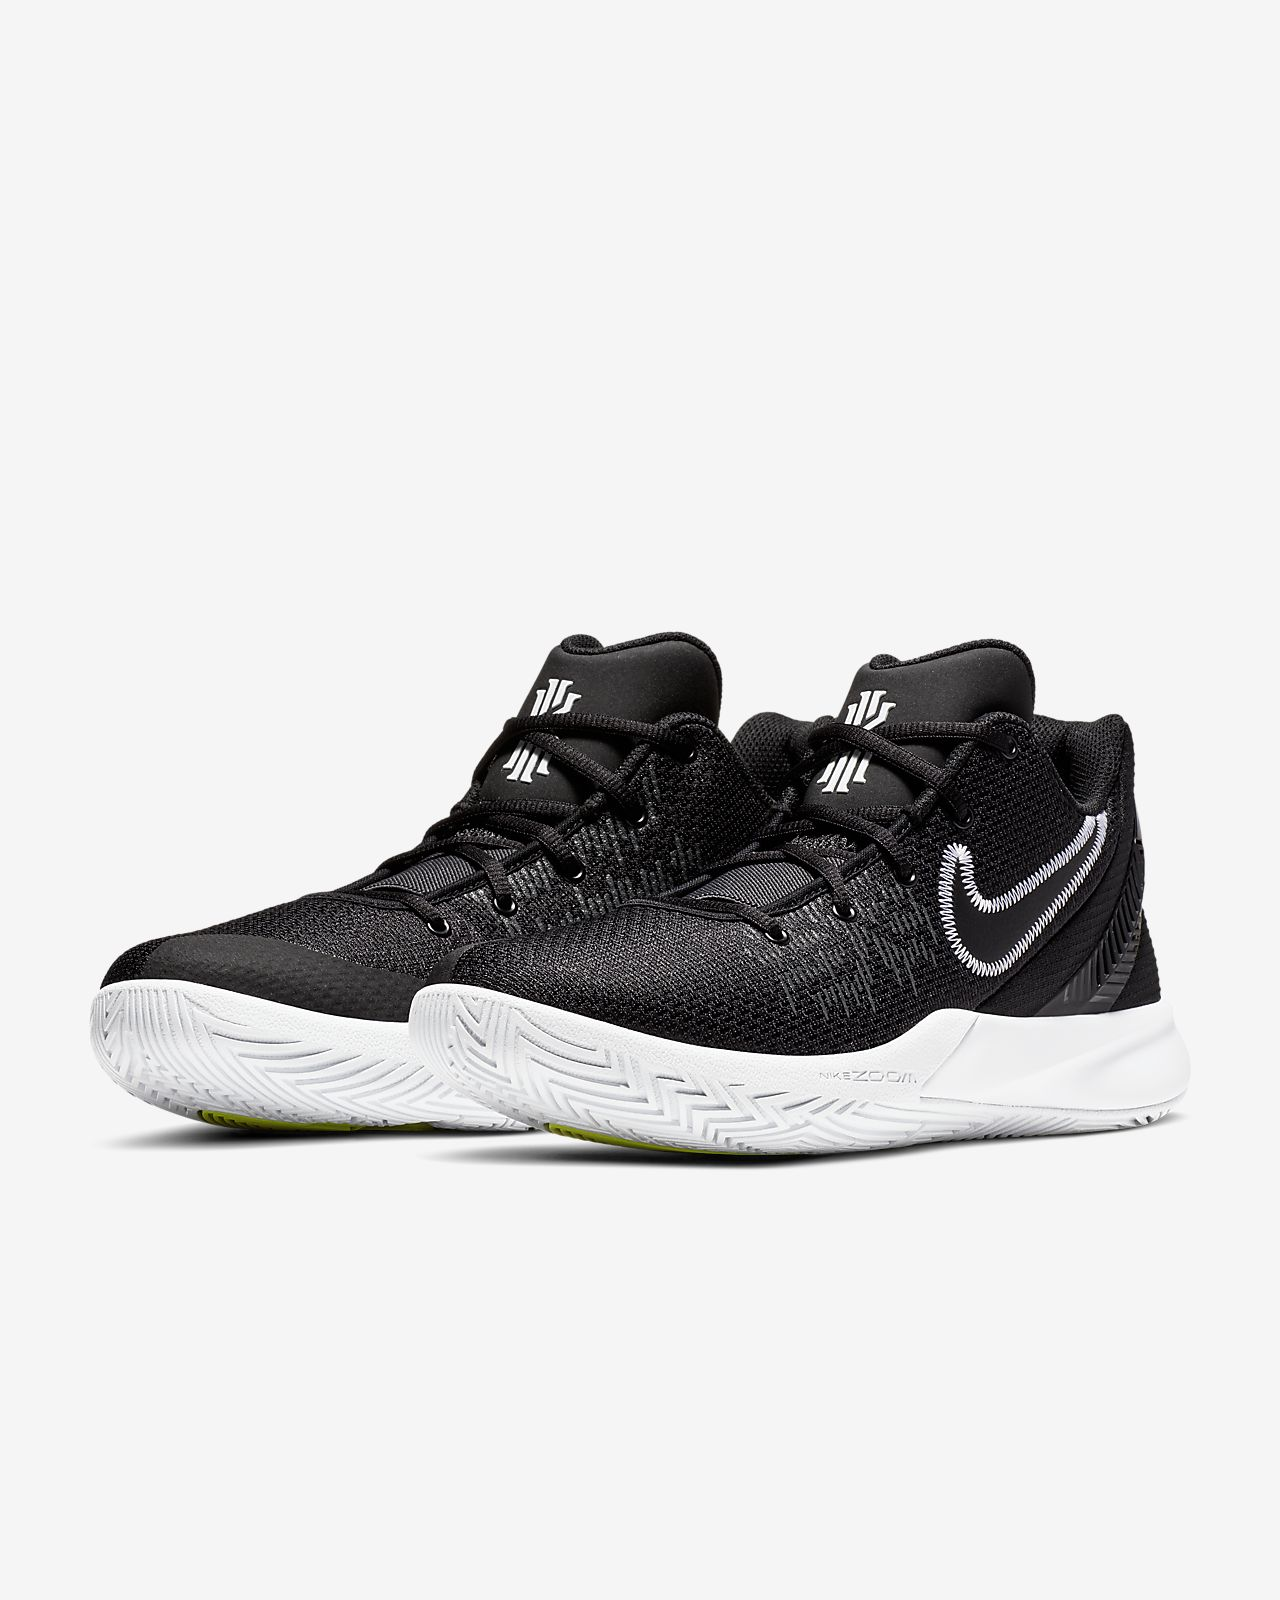 online store 19ffd 0008f Low Resolution Kyrie Flytrap II Basketballschuh Kyrie Flytrap II  Basketballschuh